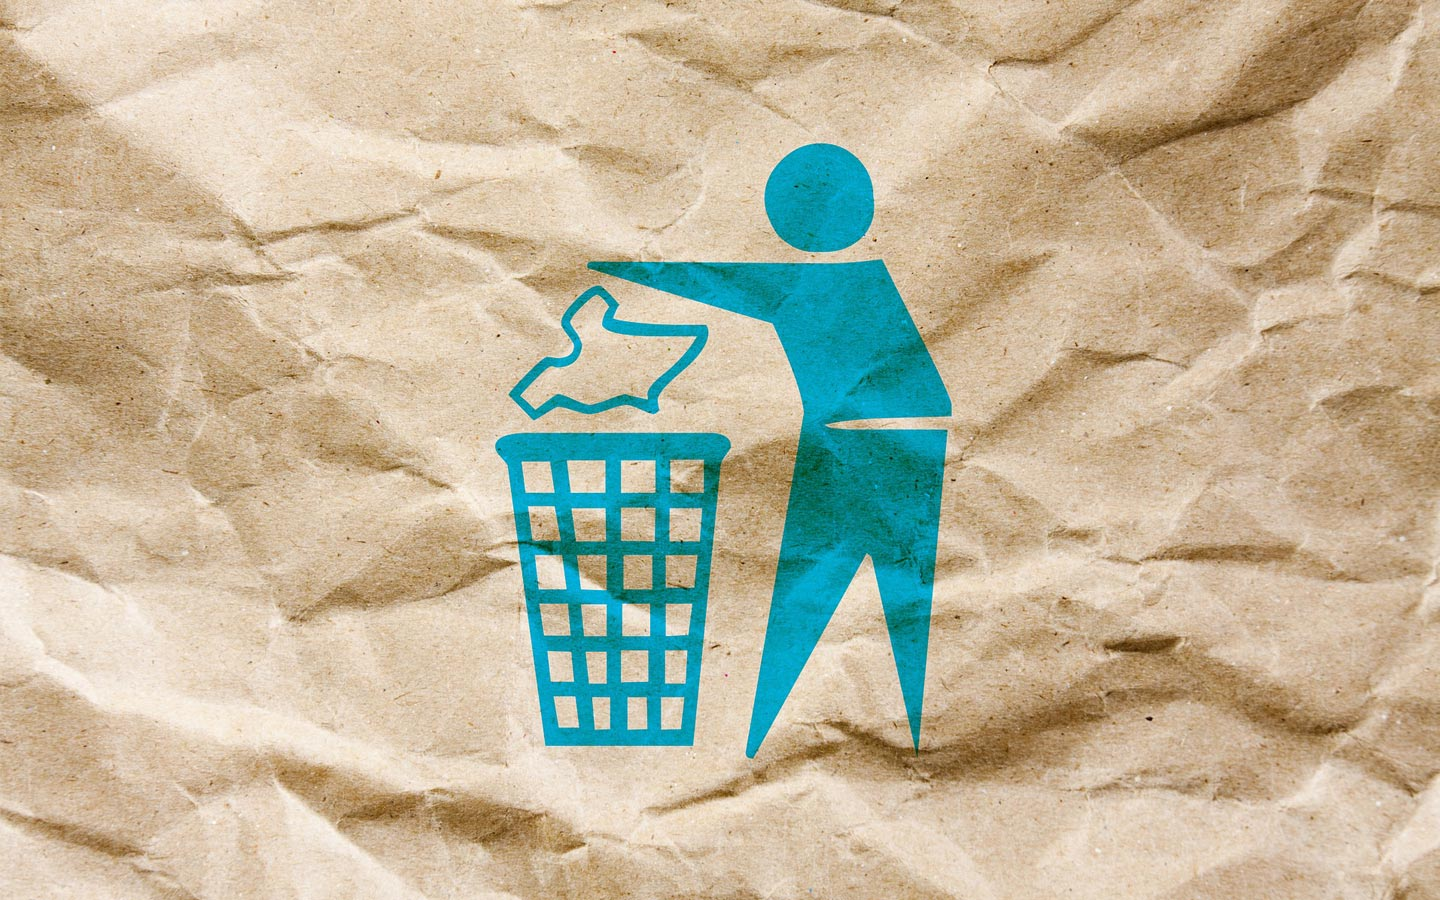 recycling tips from bayut